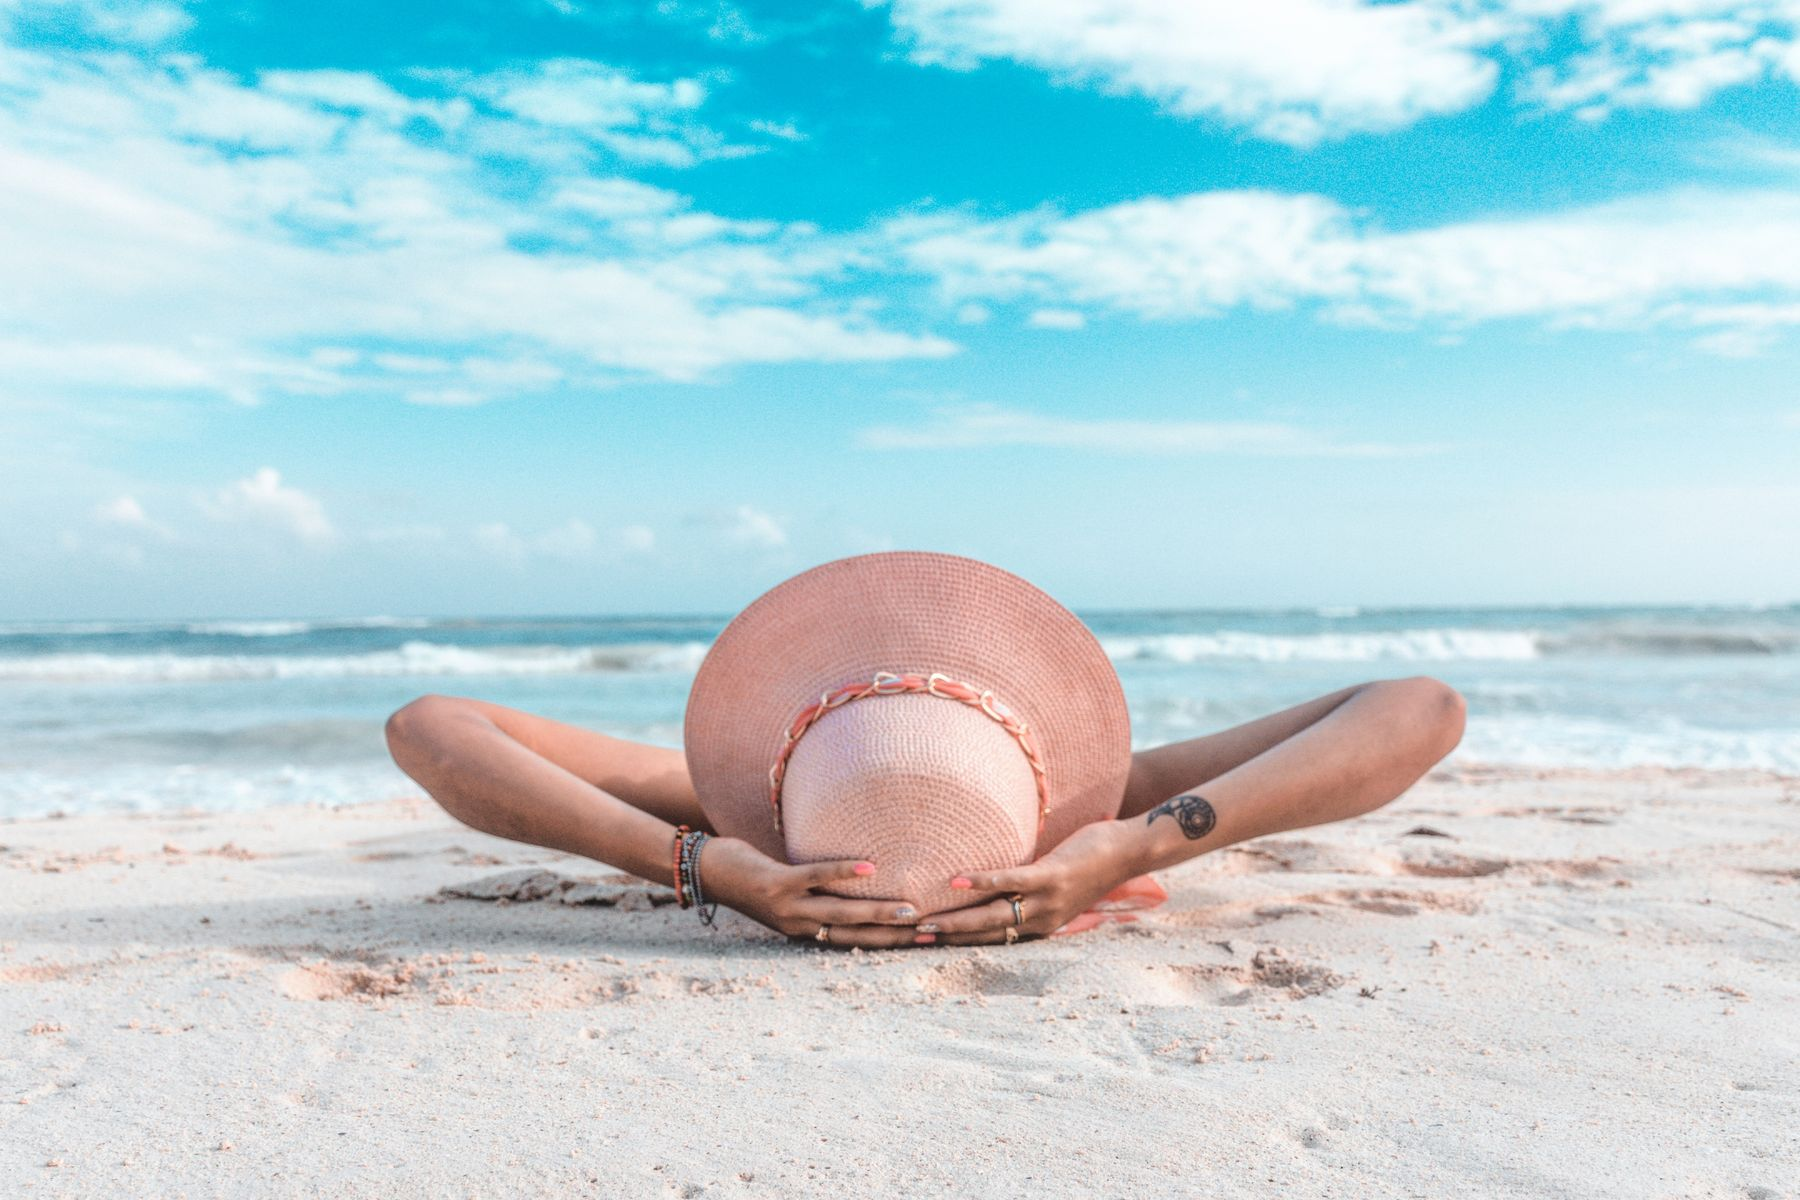 person with a beach hat on resting on the sand by the beach in Playa del Carmen, Mexico.